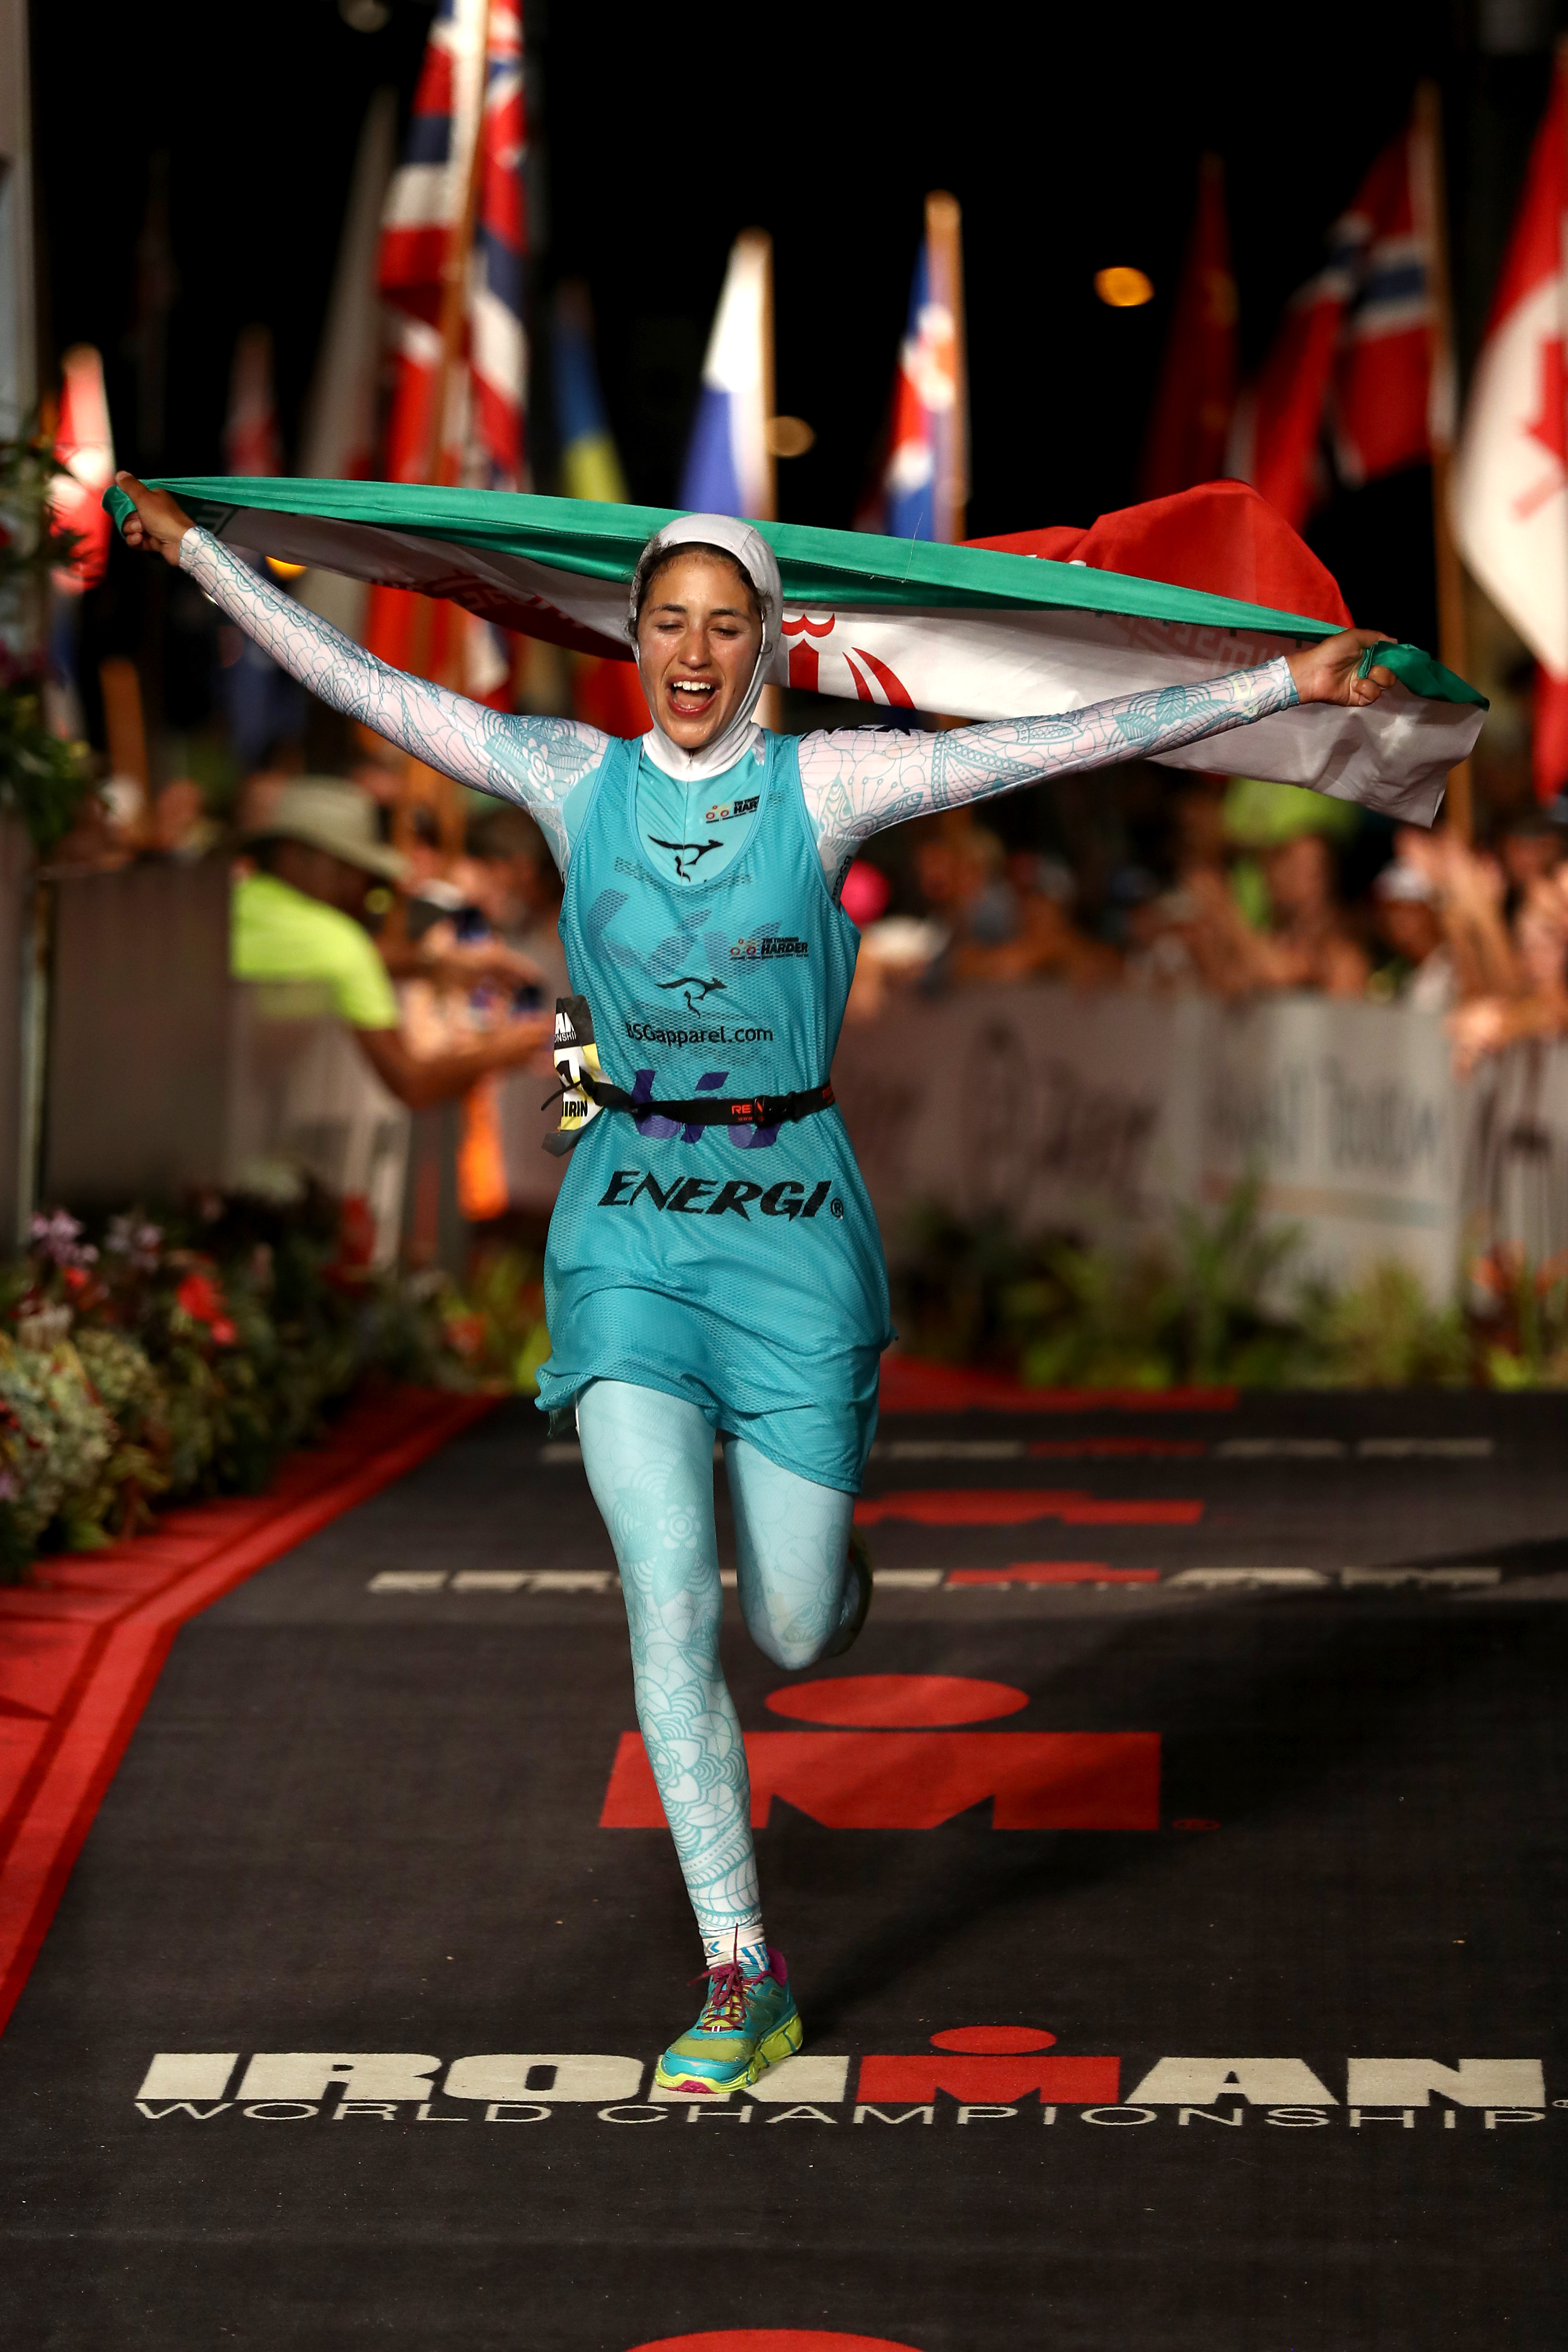 KAILUA KONA, HI - OCTOBER 08: Shirin Girami #151 of Iran reacts after crossing the finish line in the 2016 IRONMAN World Championship triathlon on October 8, 2016 in Kailua Kona, Hawaii. (Photo by Sean M. Haffey/Getty Images for Ironman)